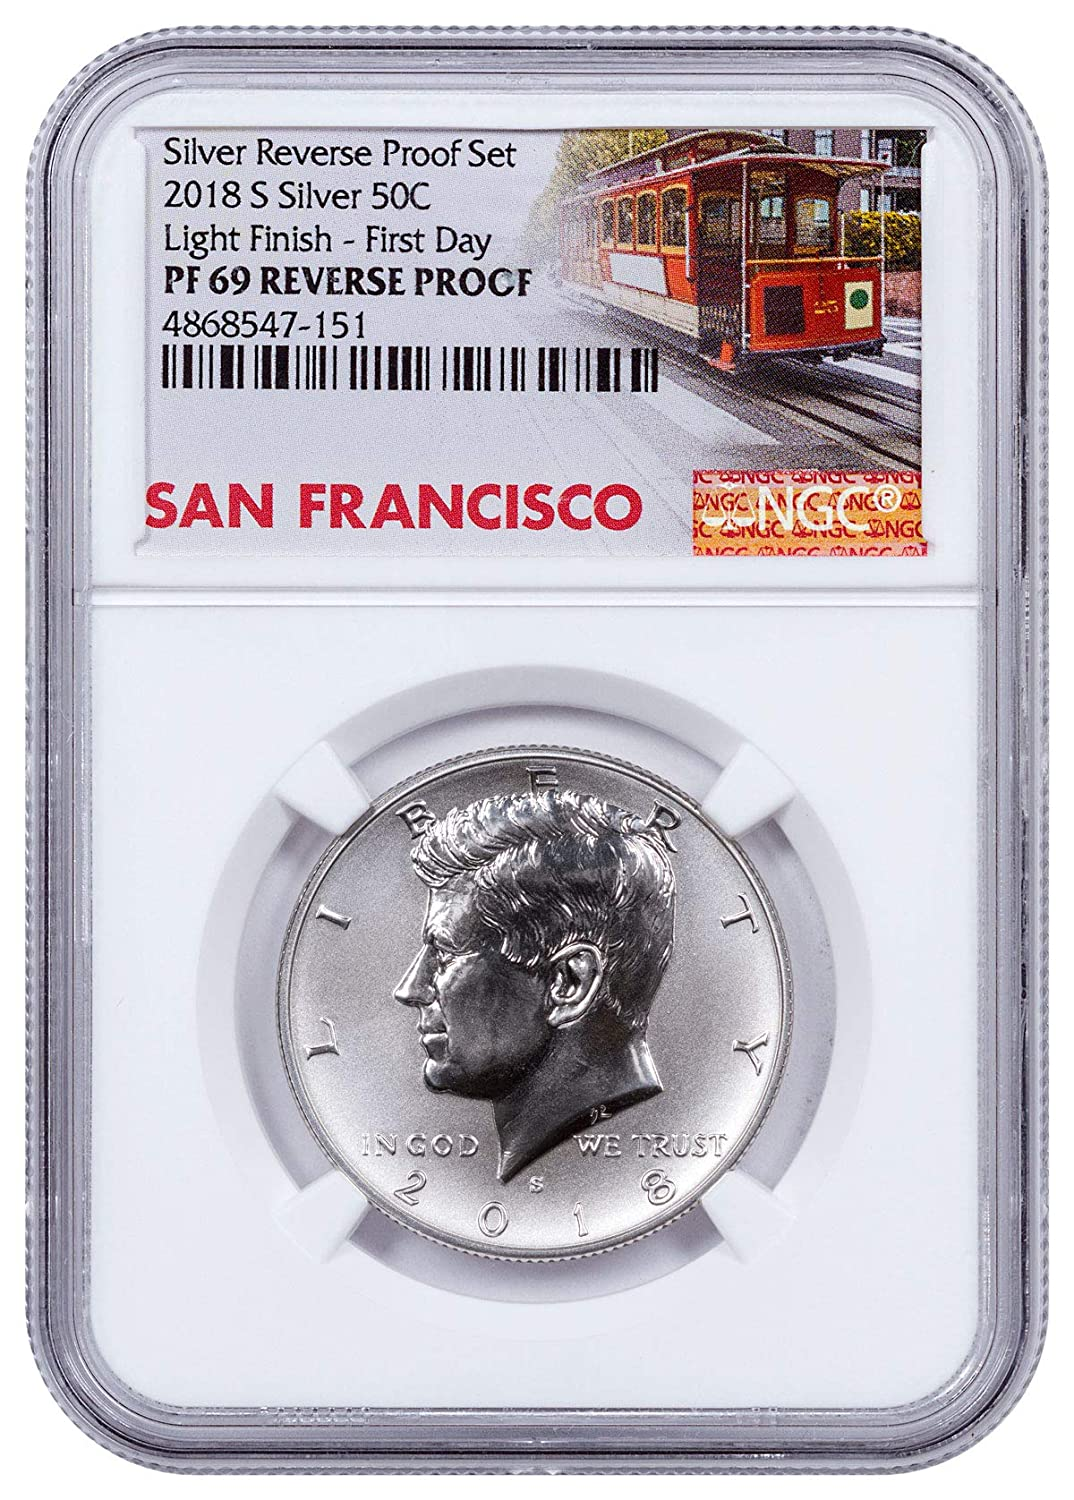 2018 San Francisco Mint Silver Reverse Proof Set with LIGHT FINISH Kennedy Half.